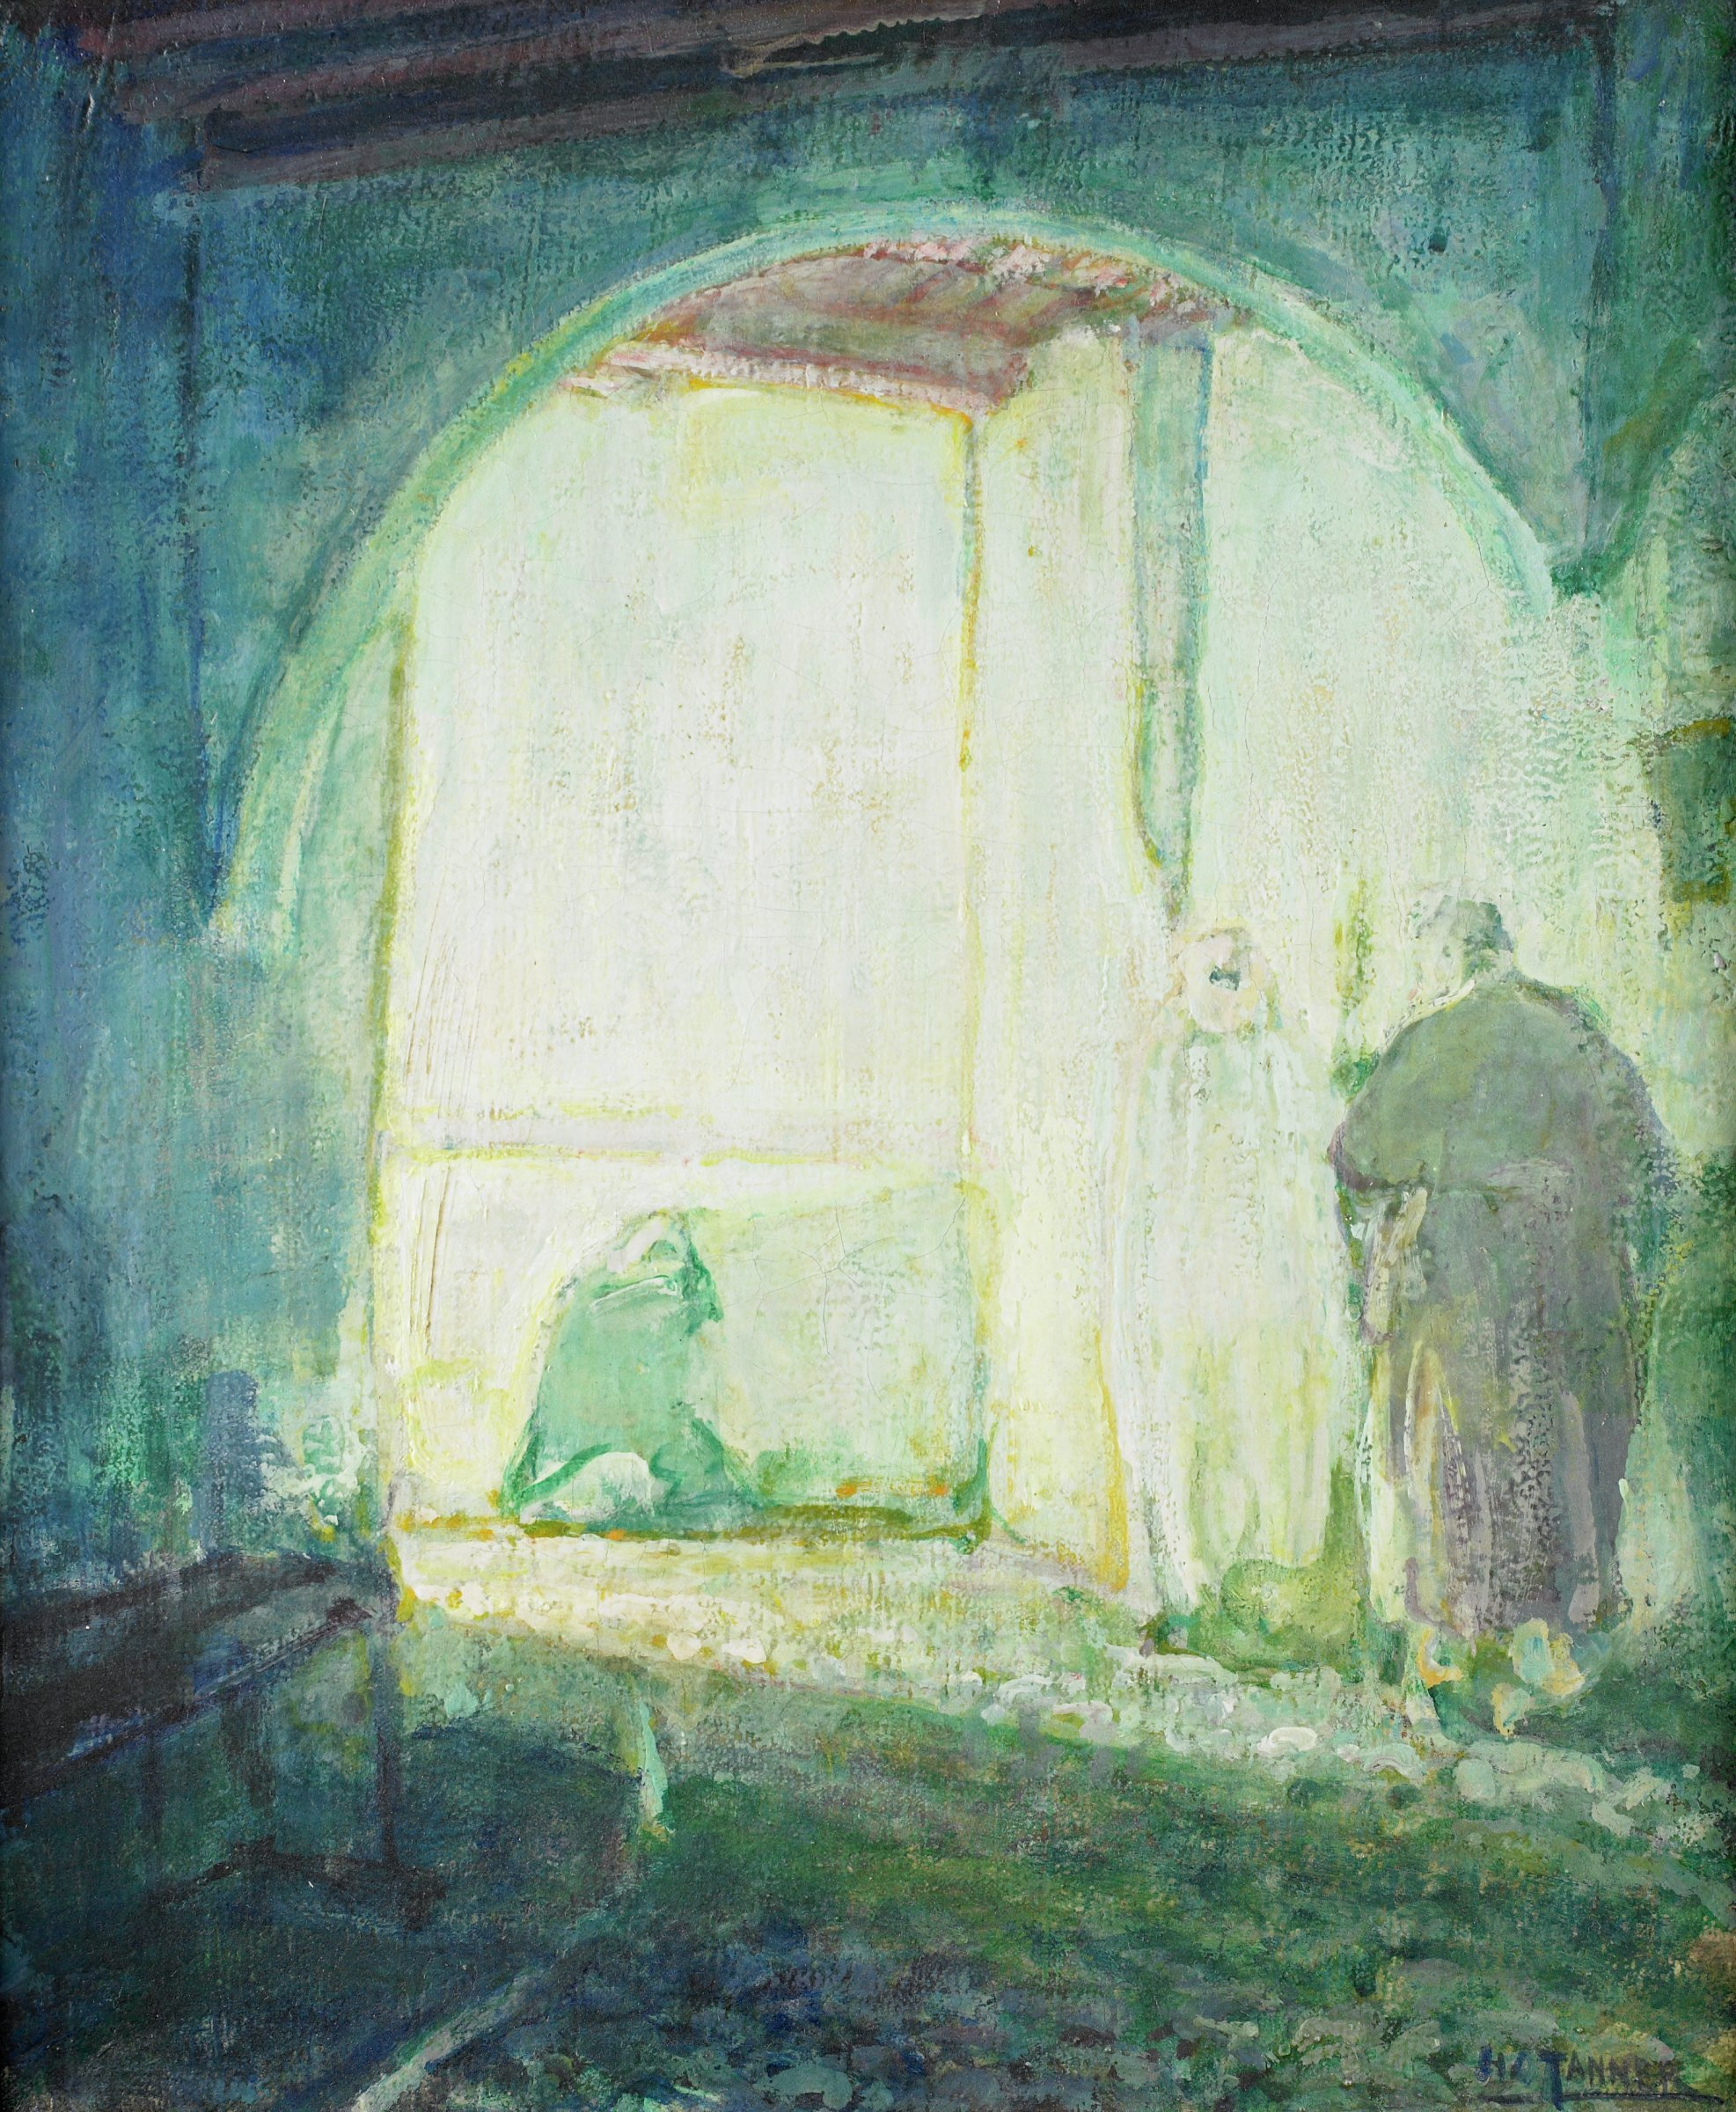 Moroccan Scene, Henry Ossawa Tanner, oil on canvas